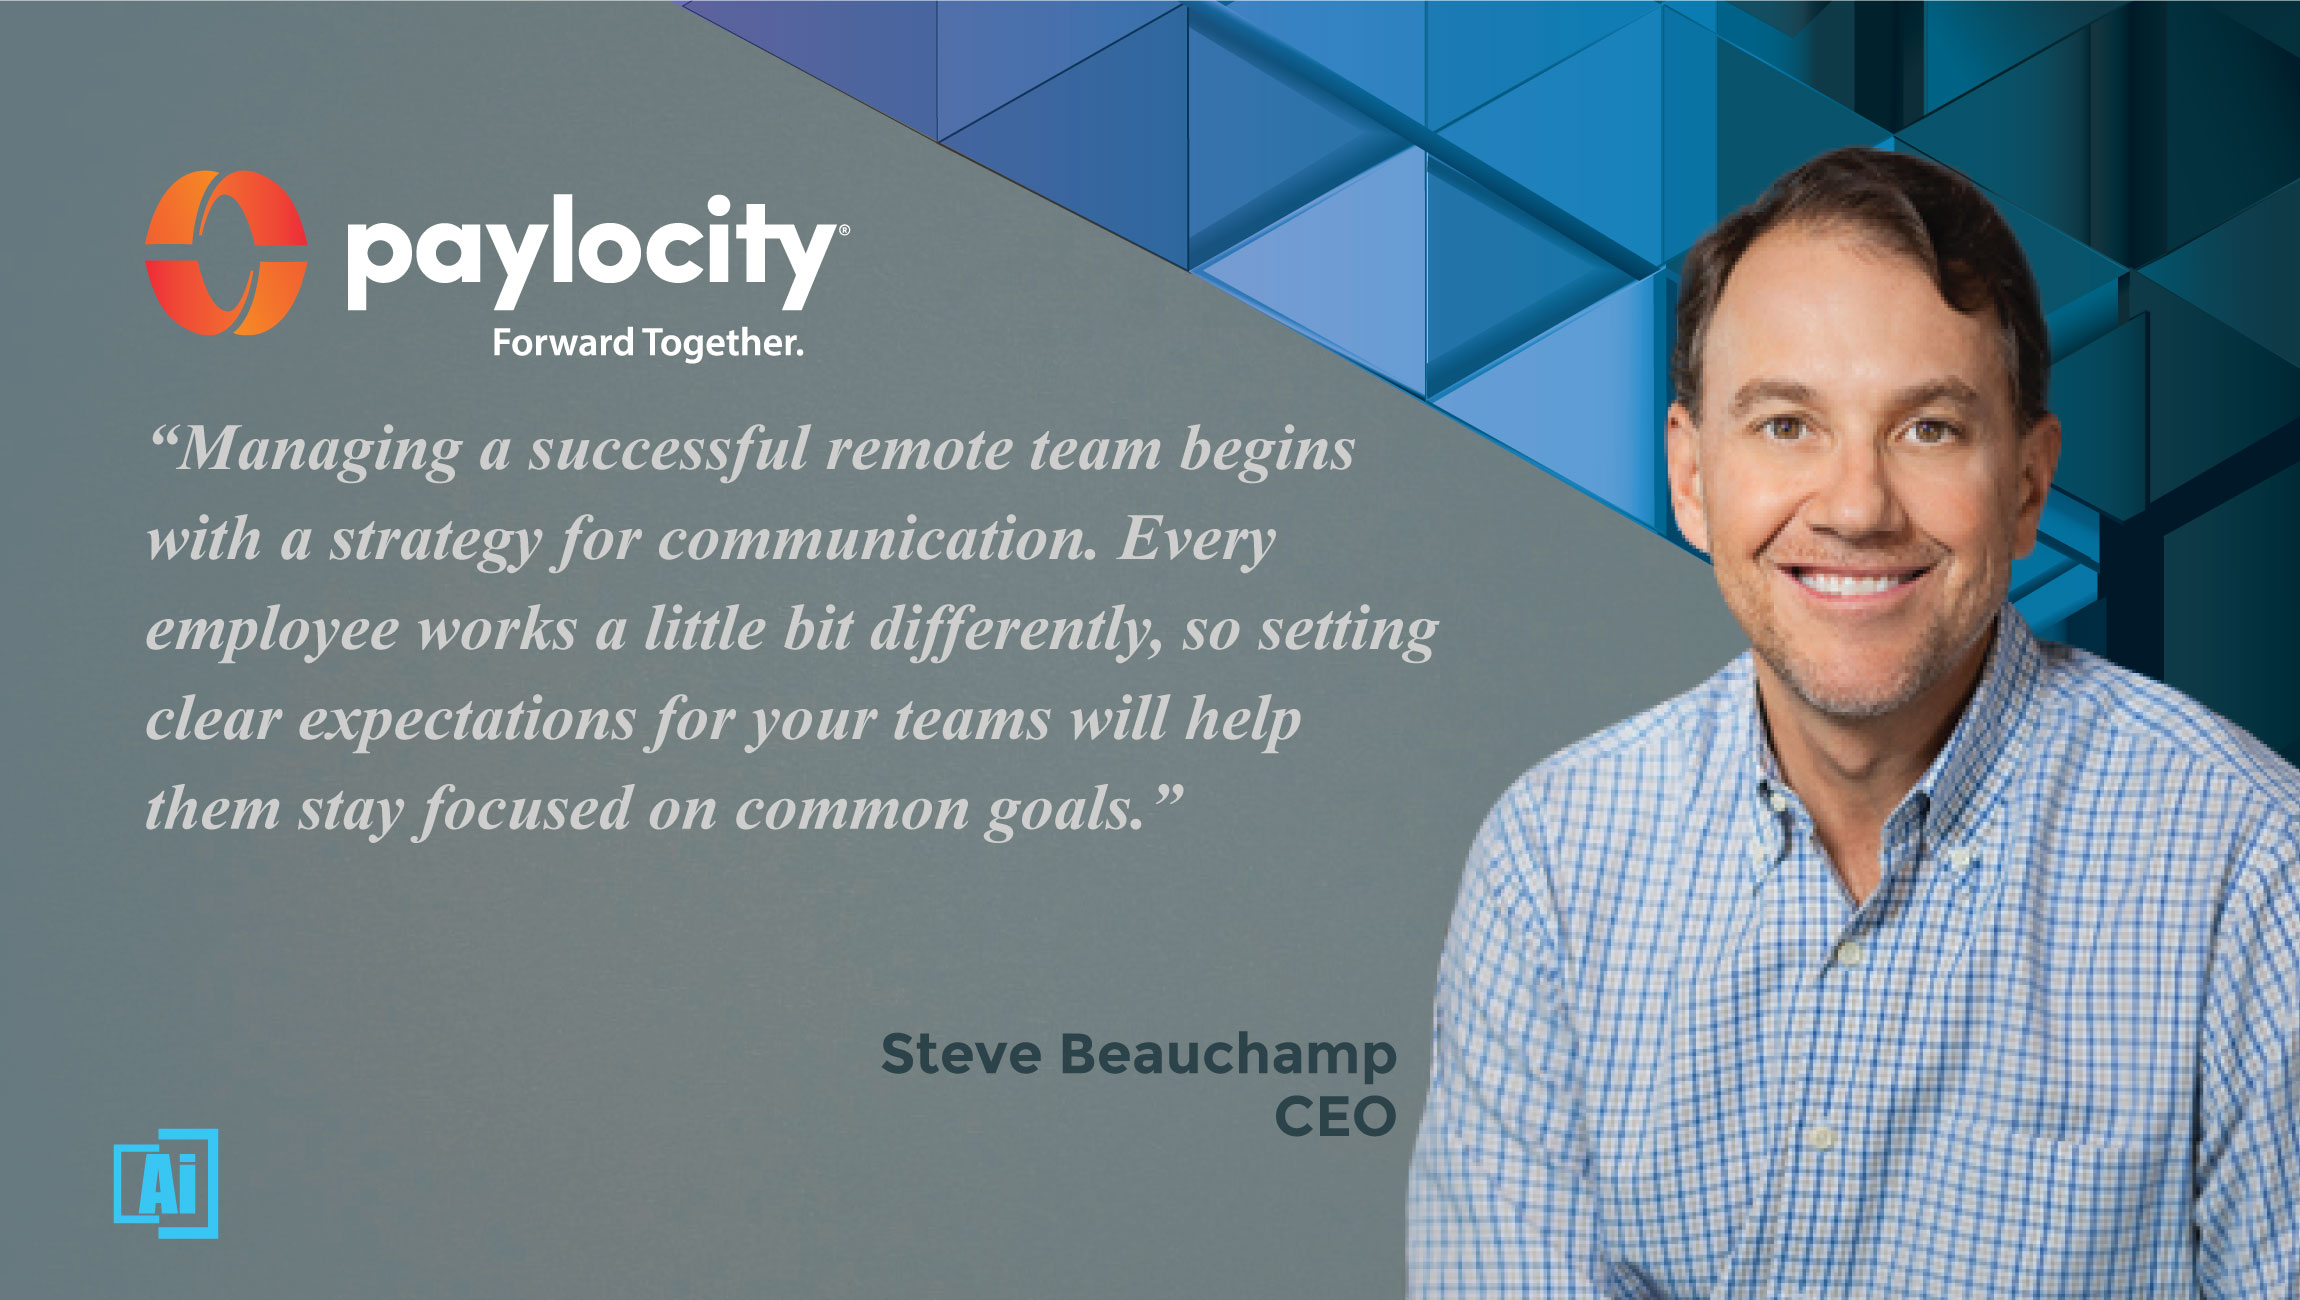 AiThority Interview with Steve Beauchamp, CEO at Paylocity